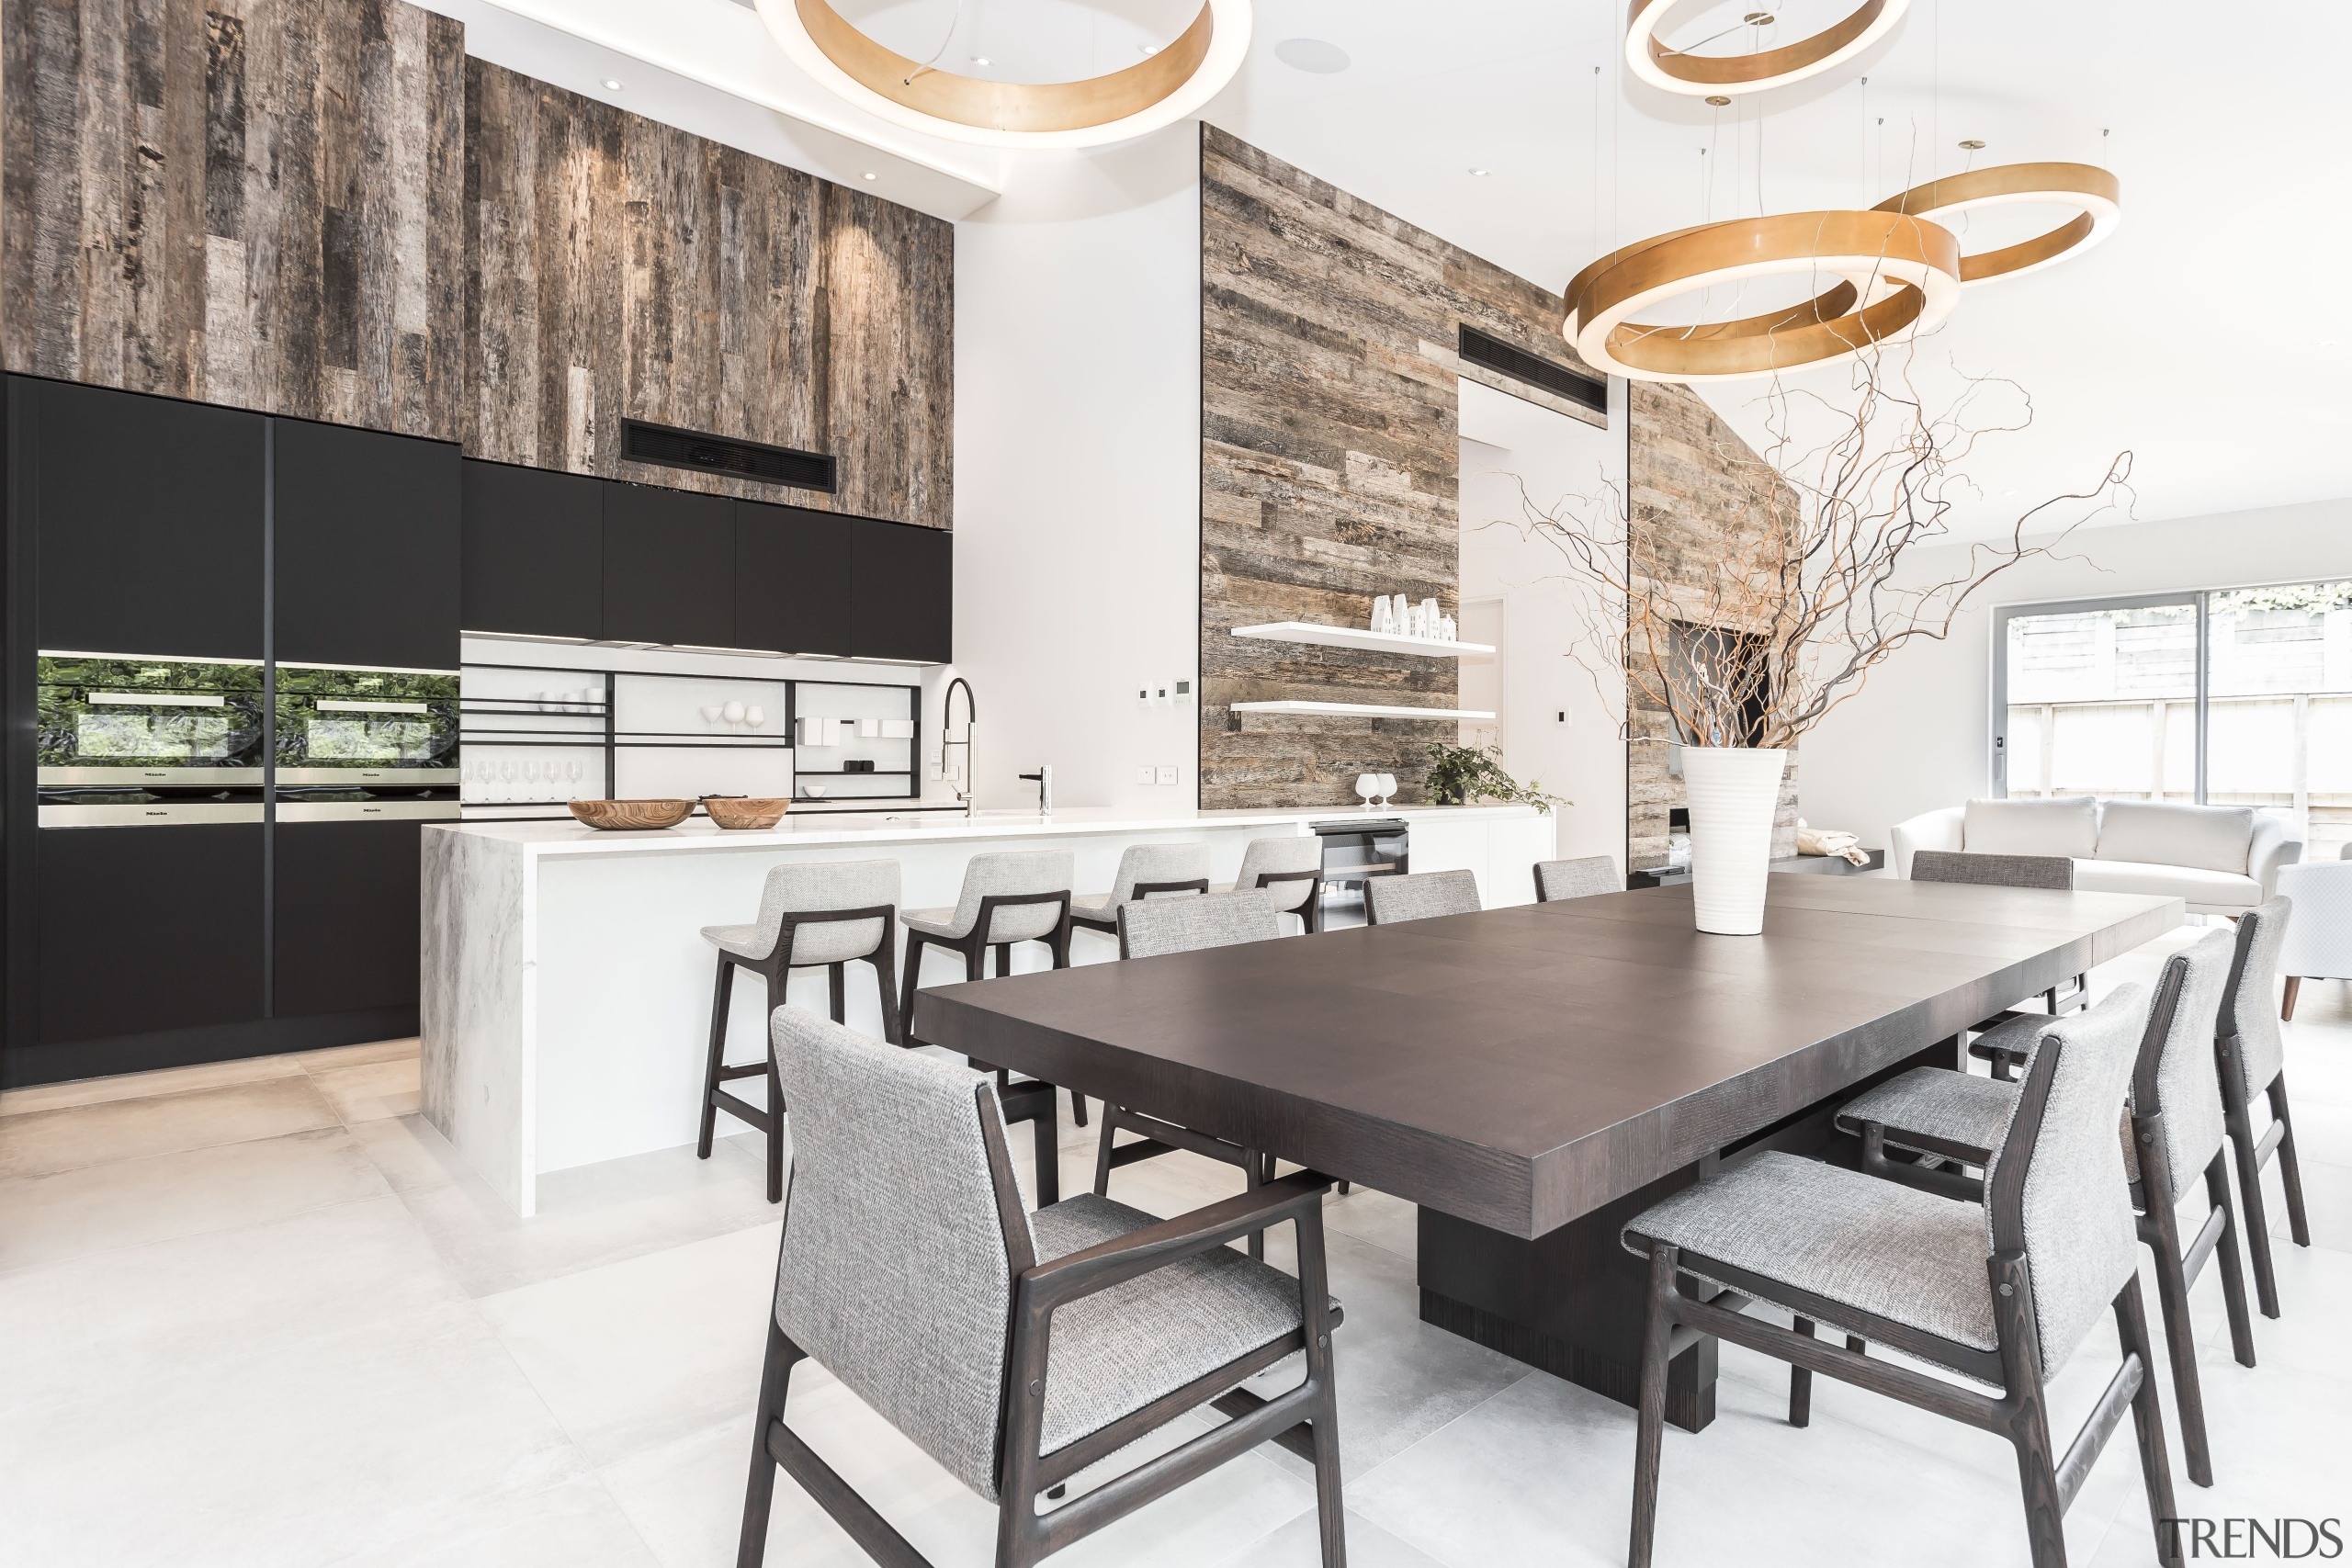 Materials and colours were kept deliberately simple, subtle countertop, dining room, furniture, interior design, kitchen, table, white